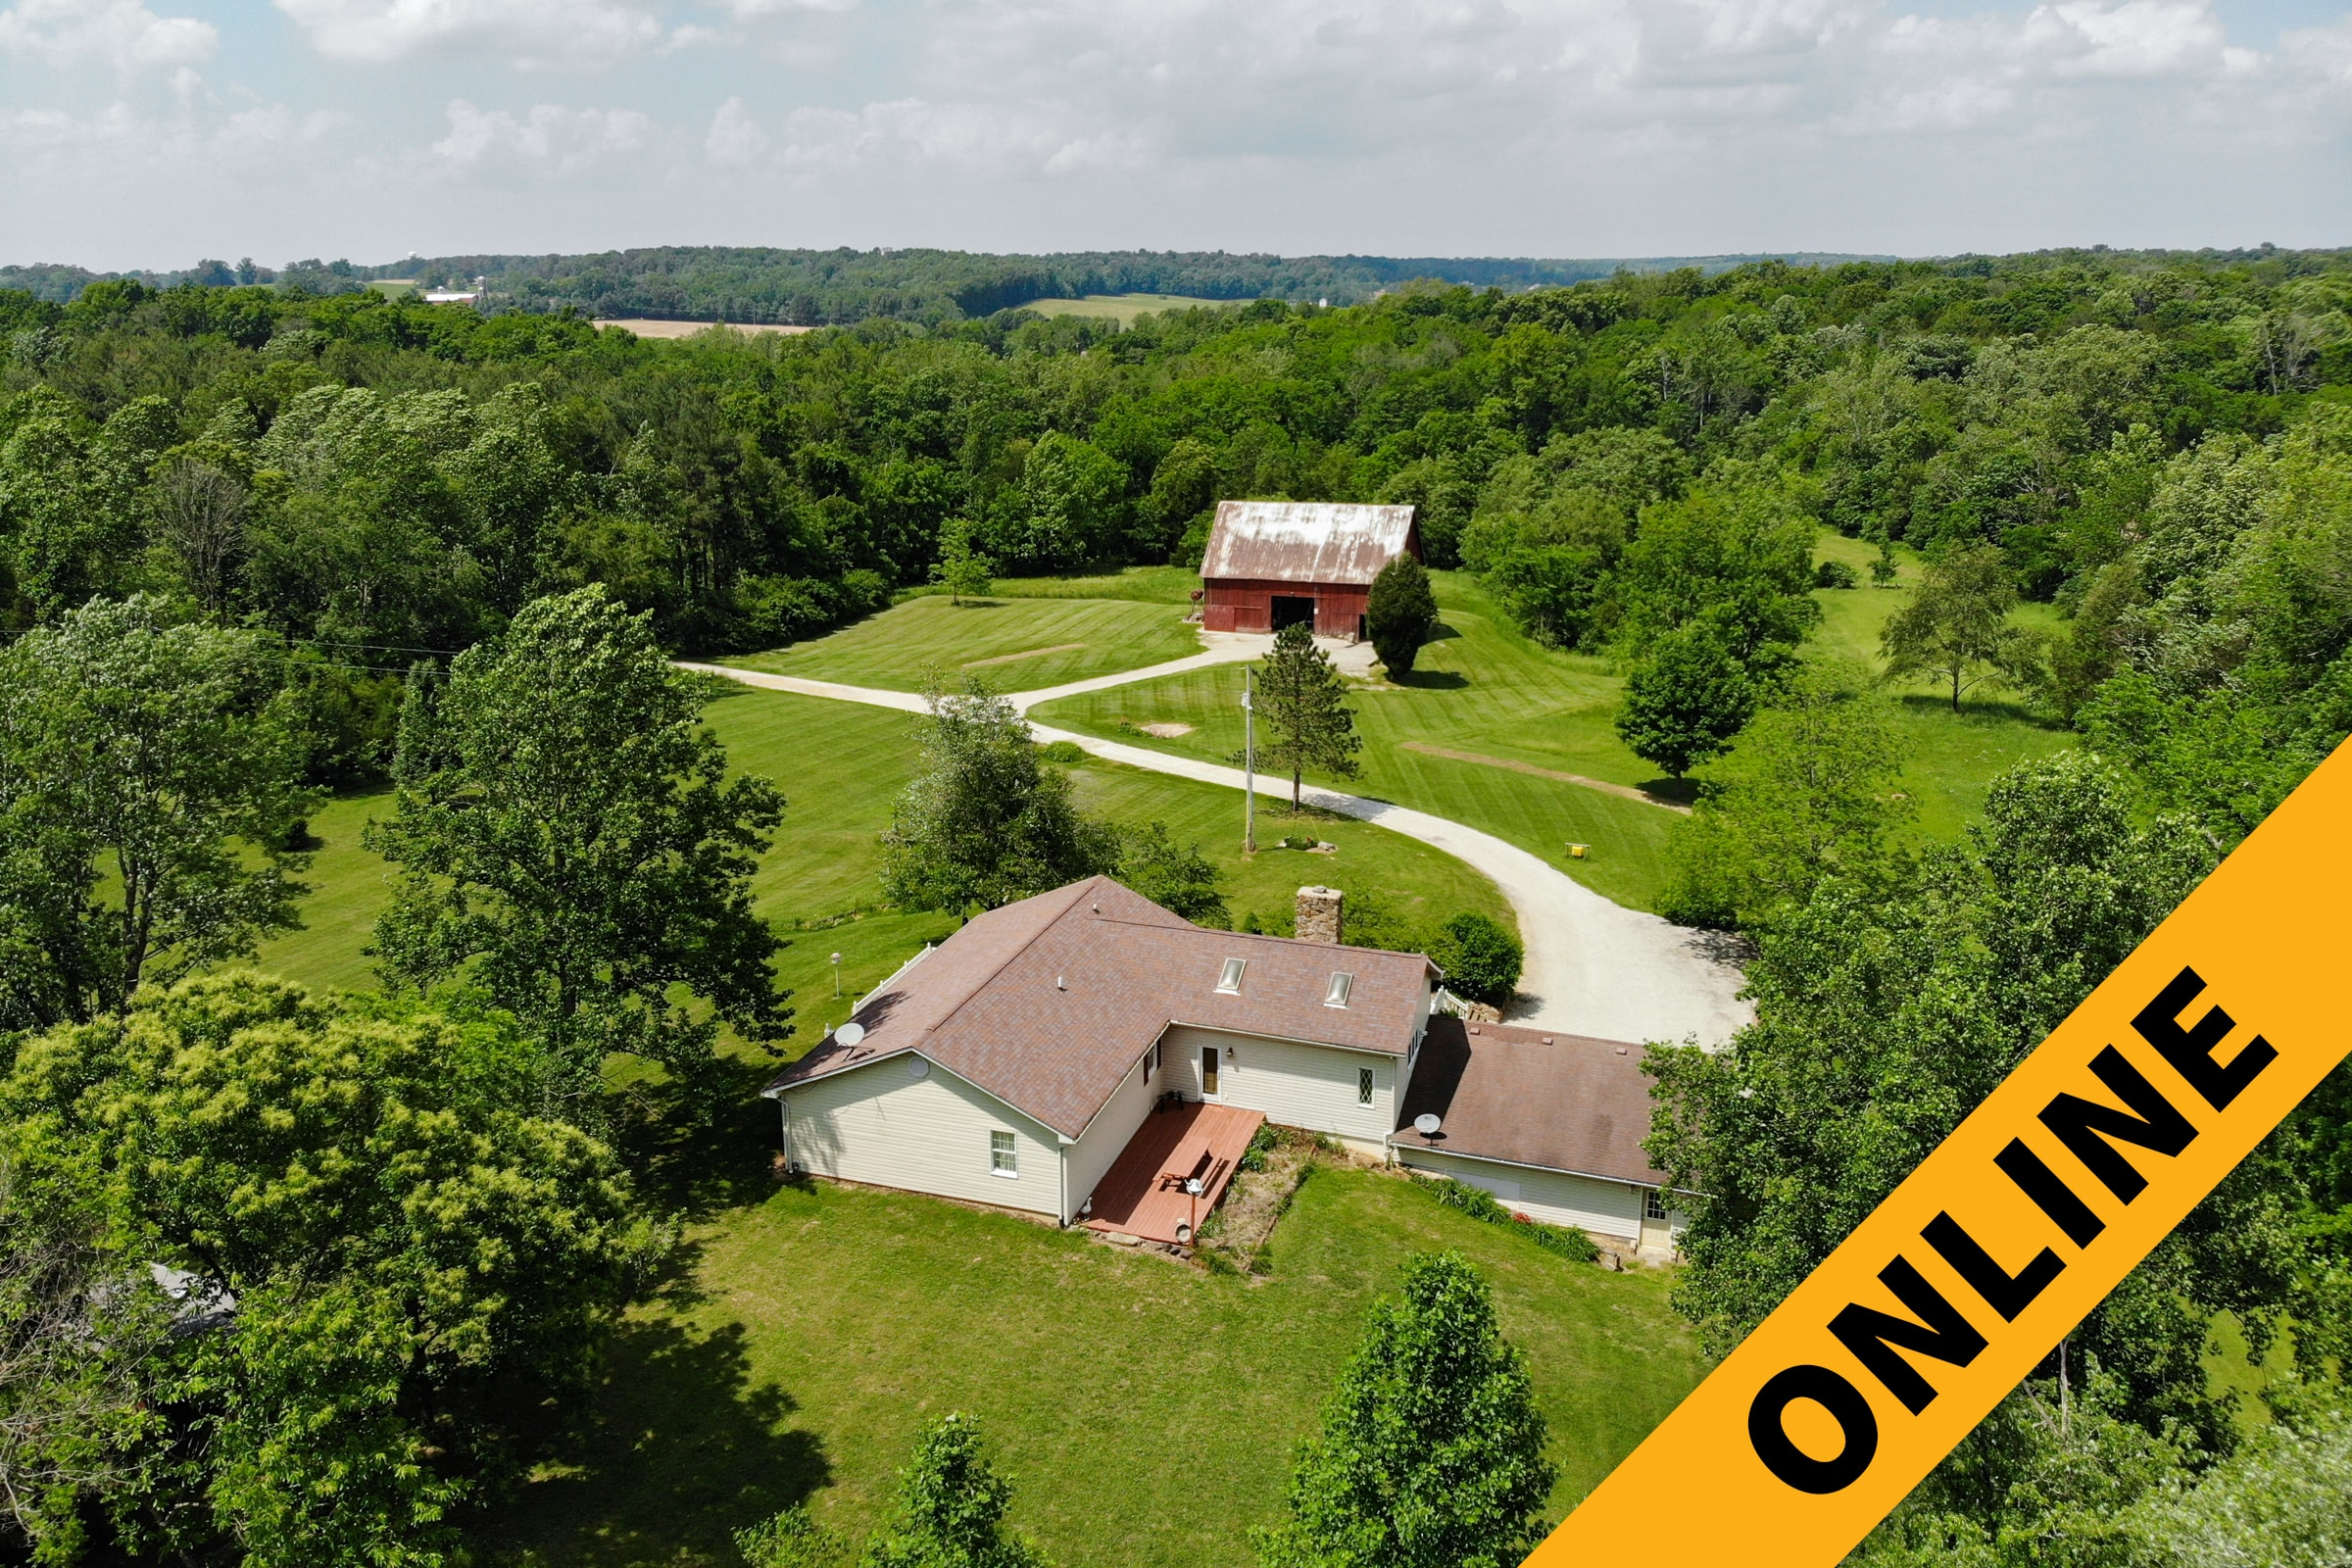 Floyd County  Land & Home Online Auction